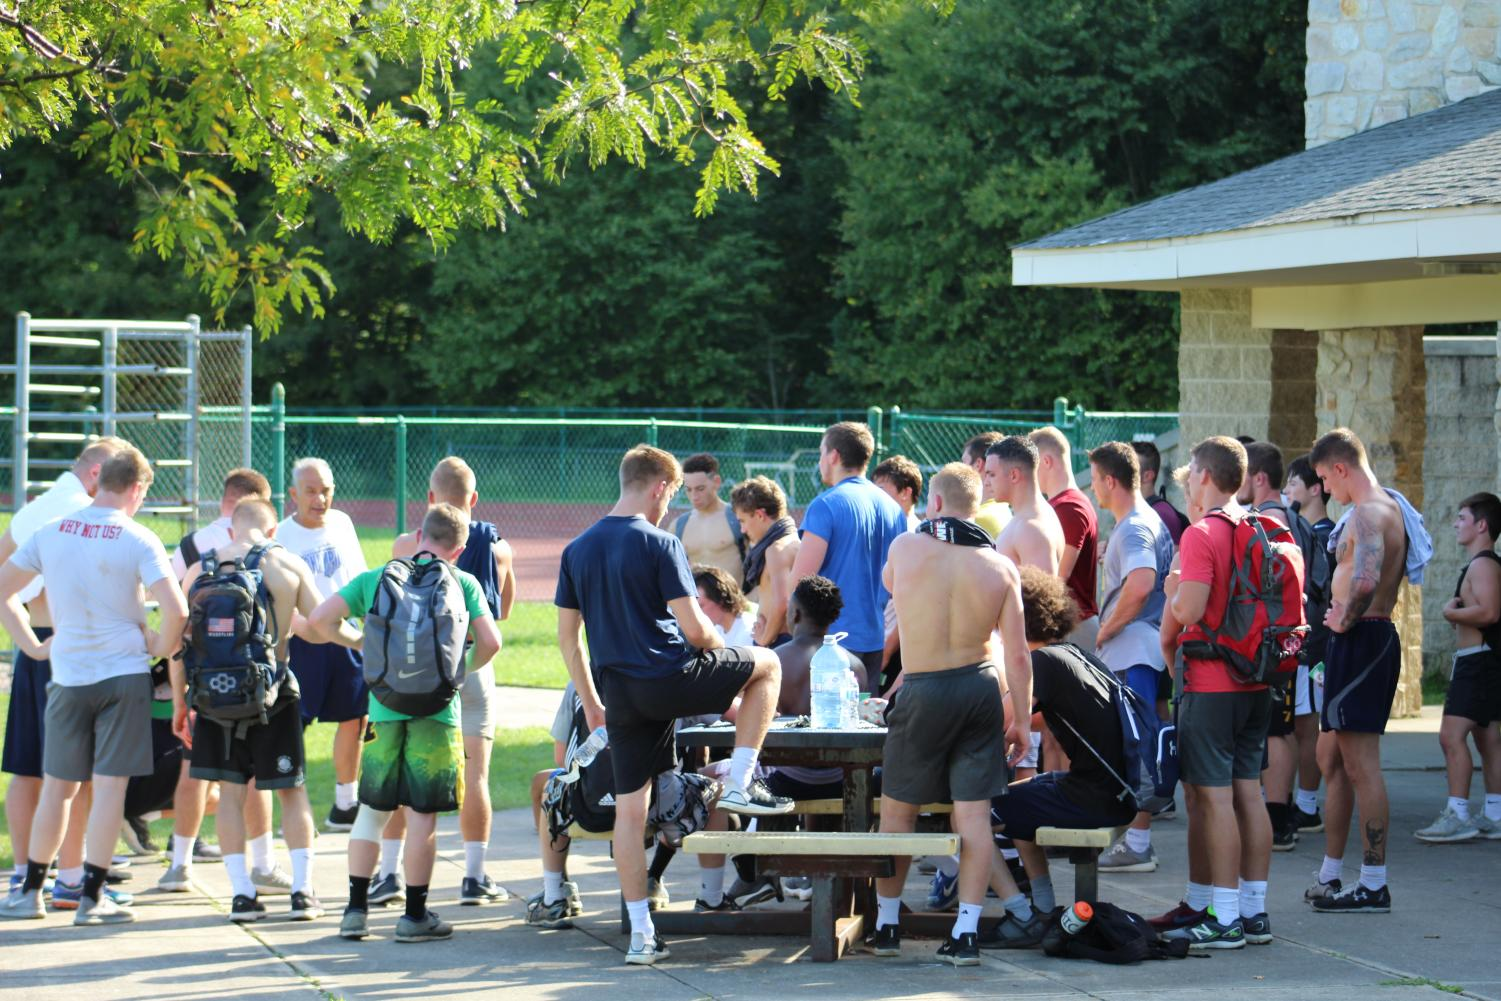 Pitt-Johnstown's head wrestling coach Pat Pecora (fifth from left) holds a team meeting after preseason training concluded adjacent to the Pitt-Johnstown outdoor track Sept. 3.